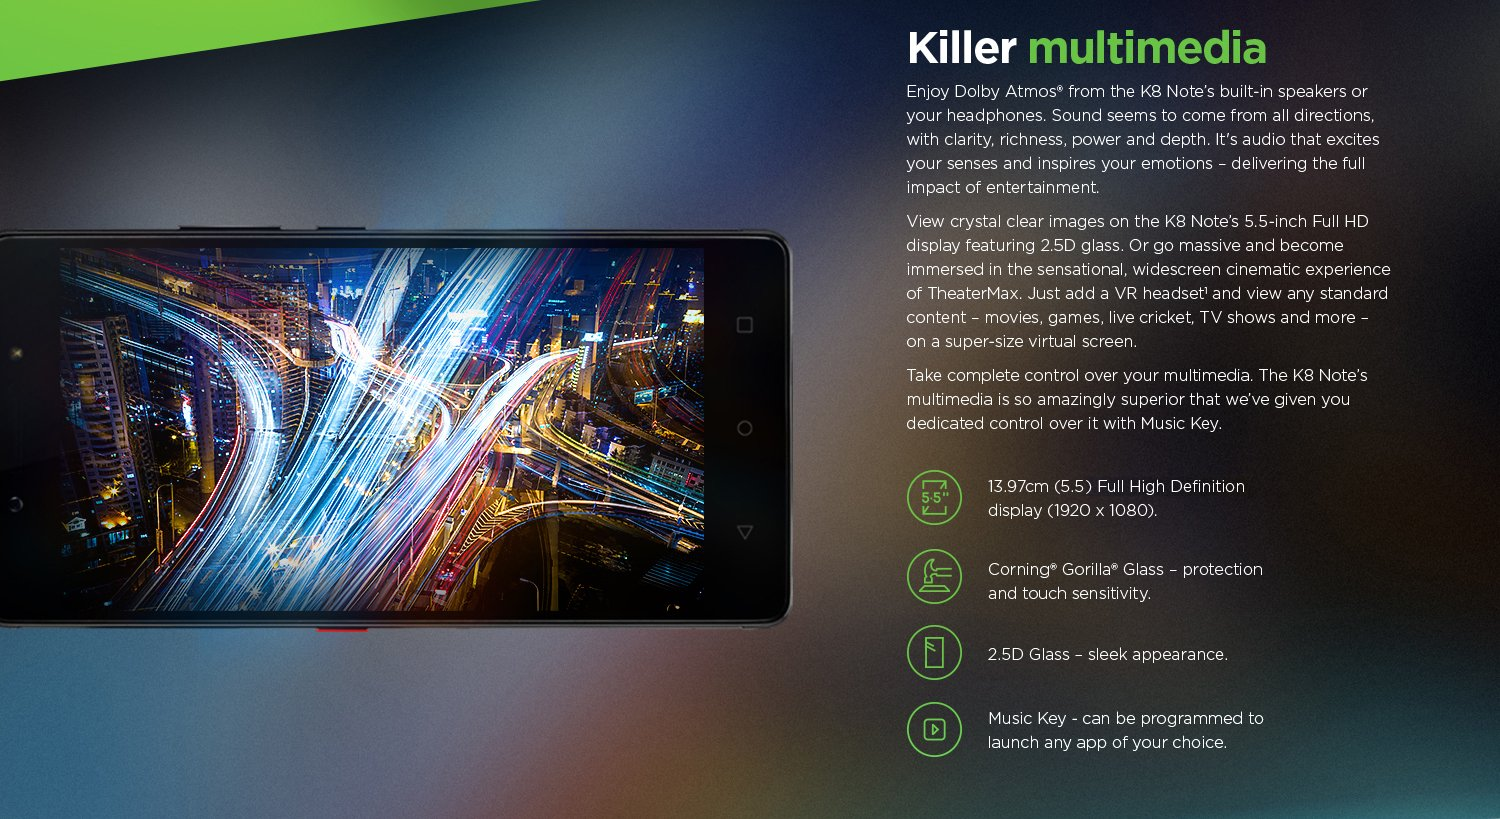 Killer multimedia